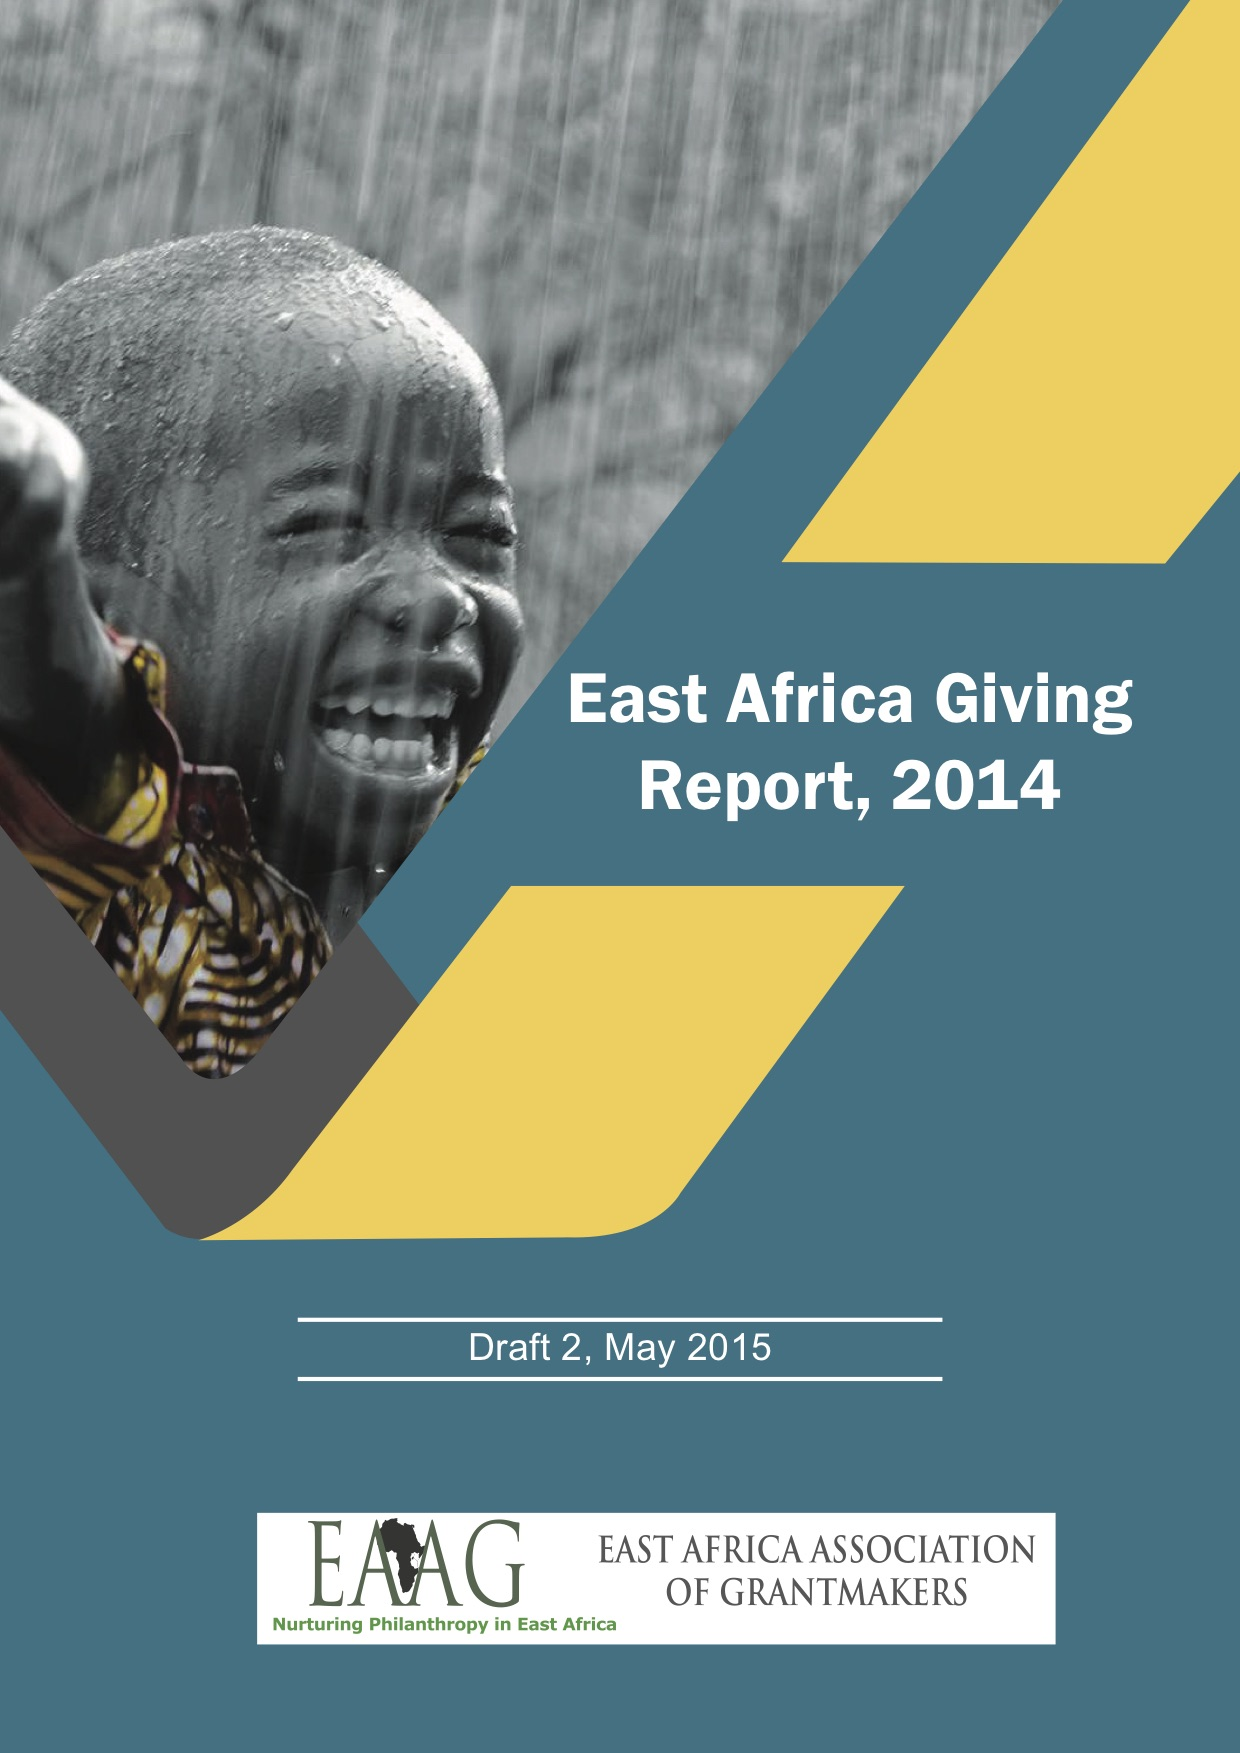 East Africa Giving Report 2014